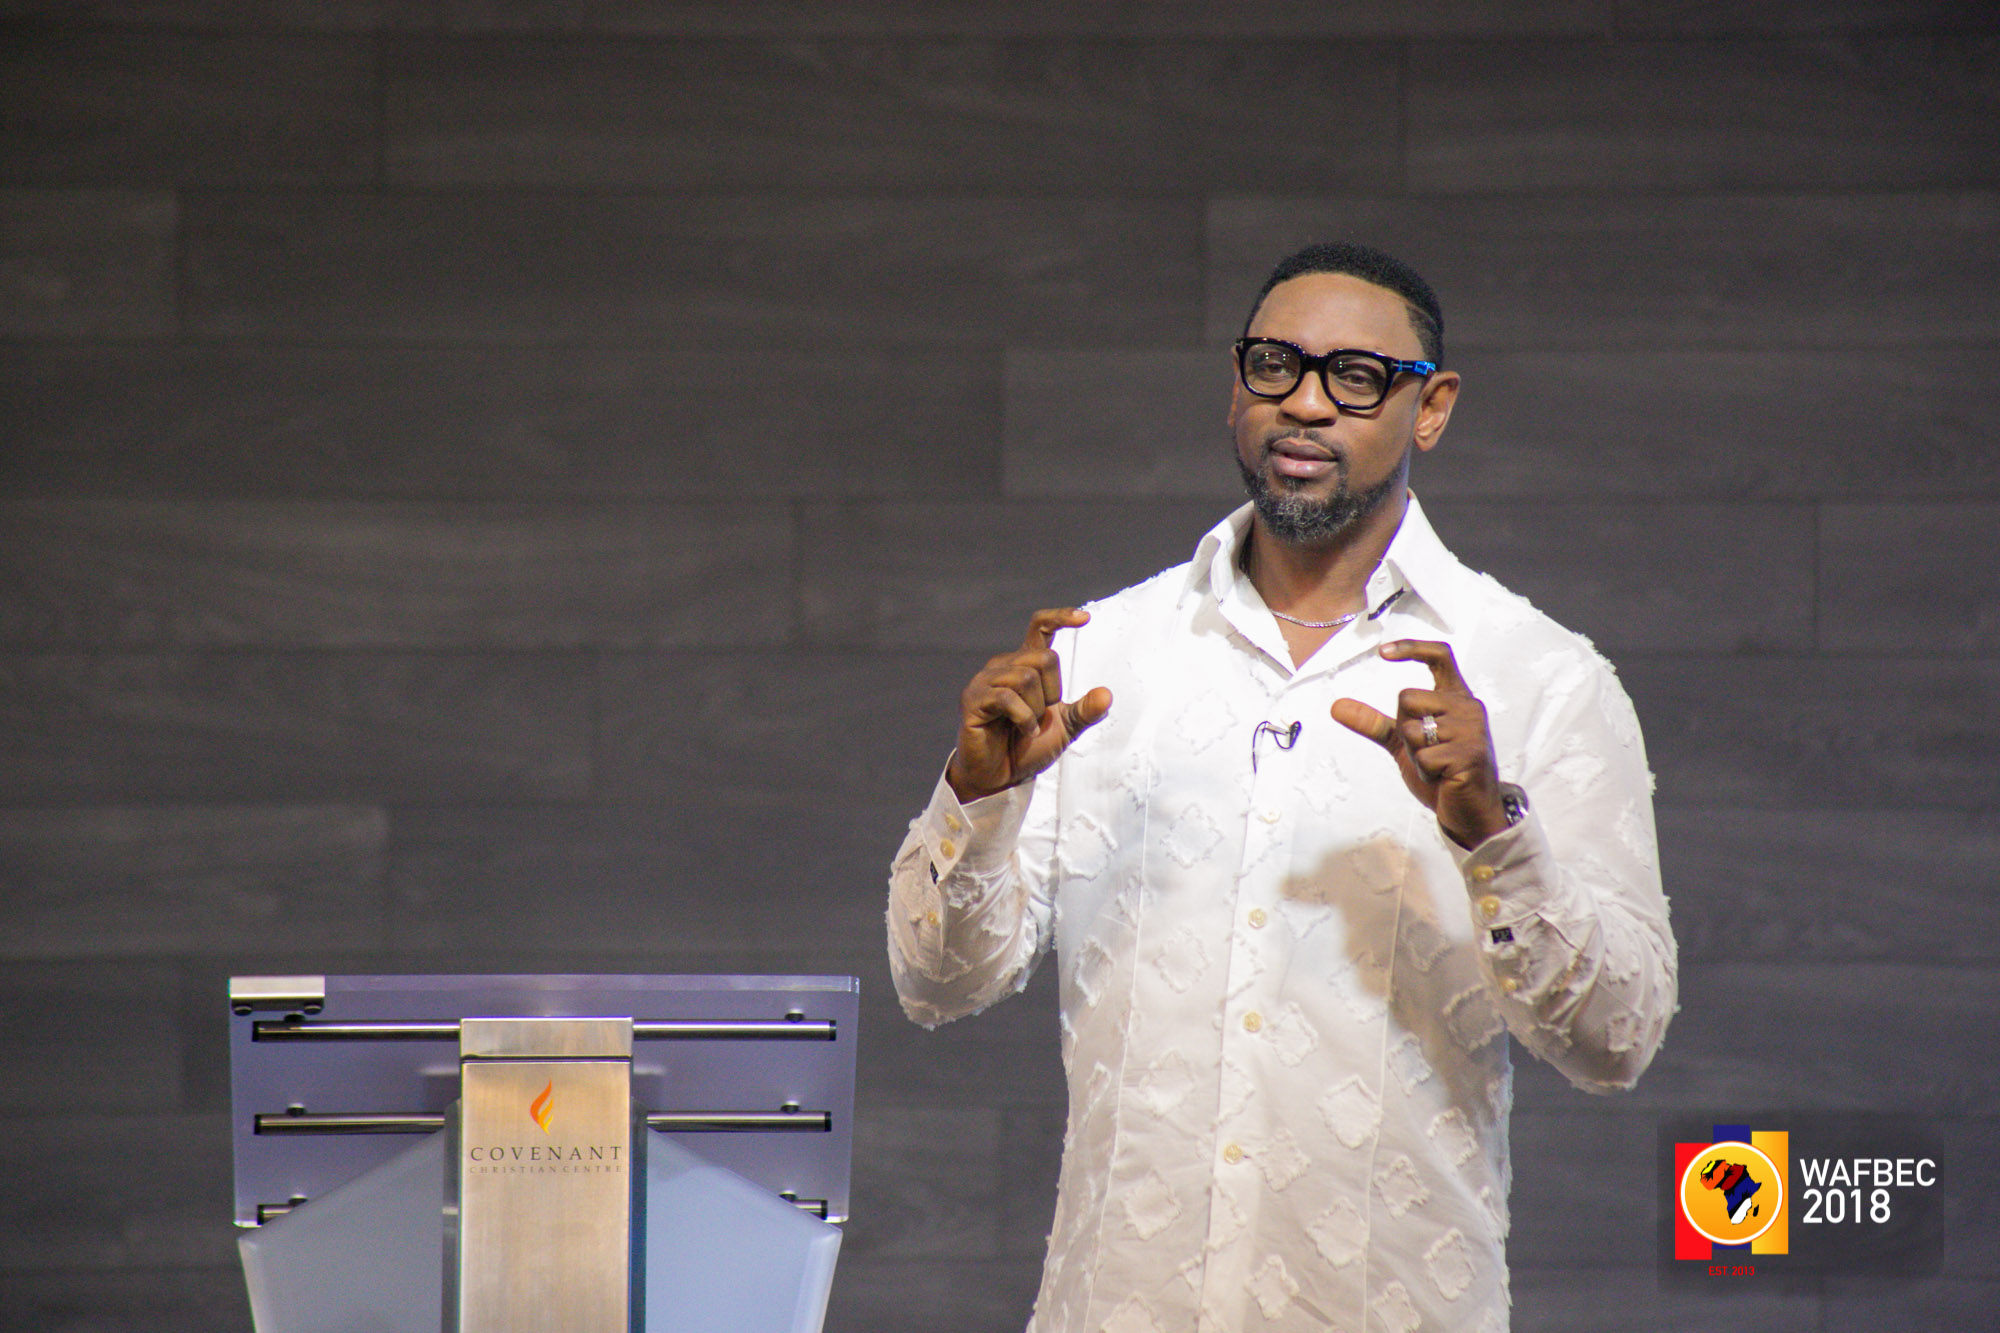 WAFBEC 2018 – Day 2 (Afternoon Session 2) with PASTOR BIODUN FATOYINBO